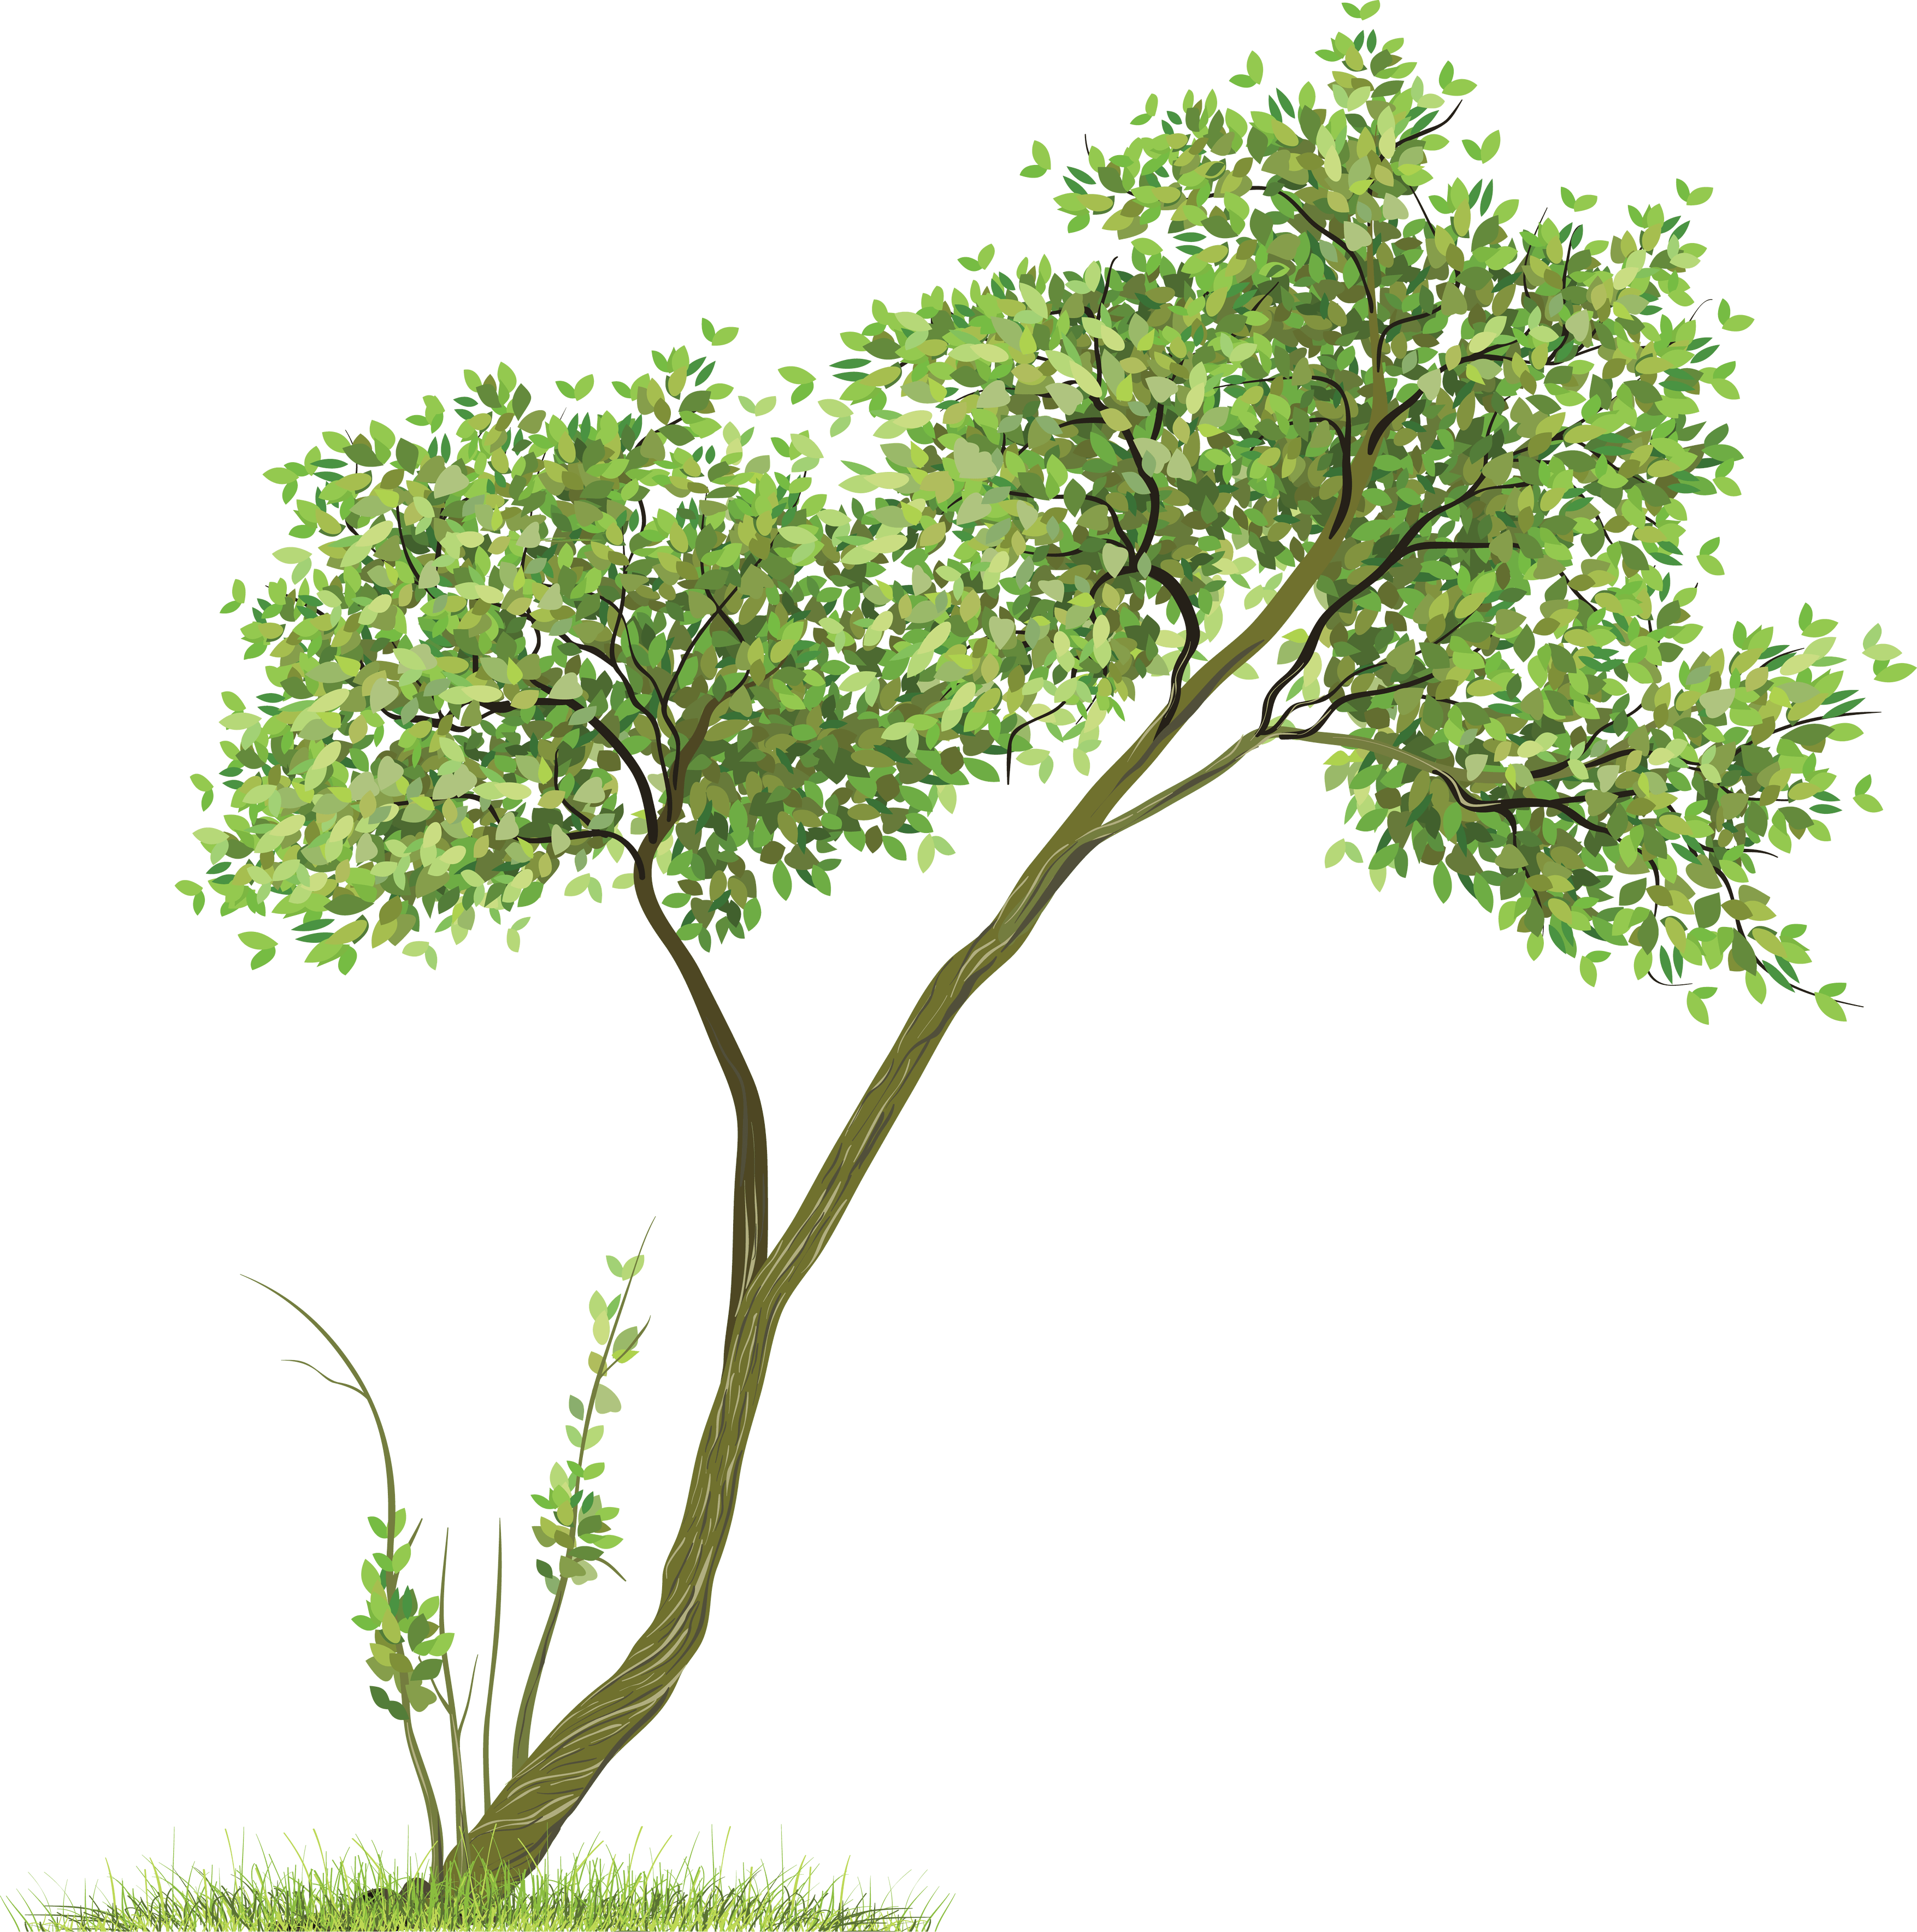 Download Tree Png Image HQ PNG Image.